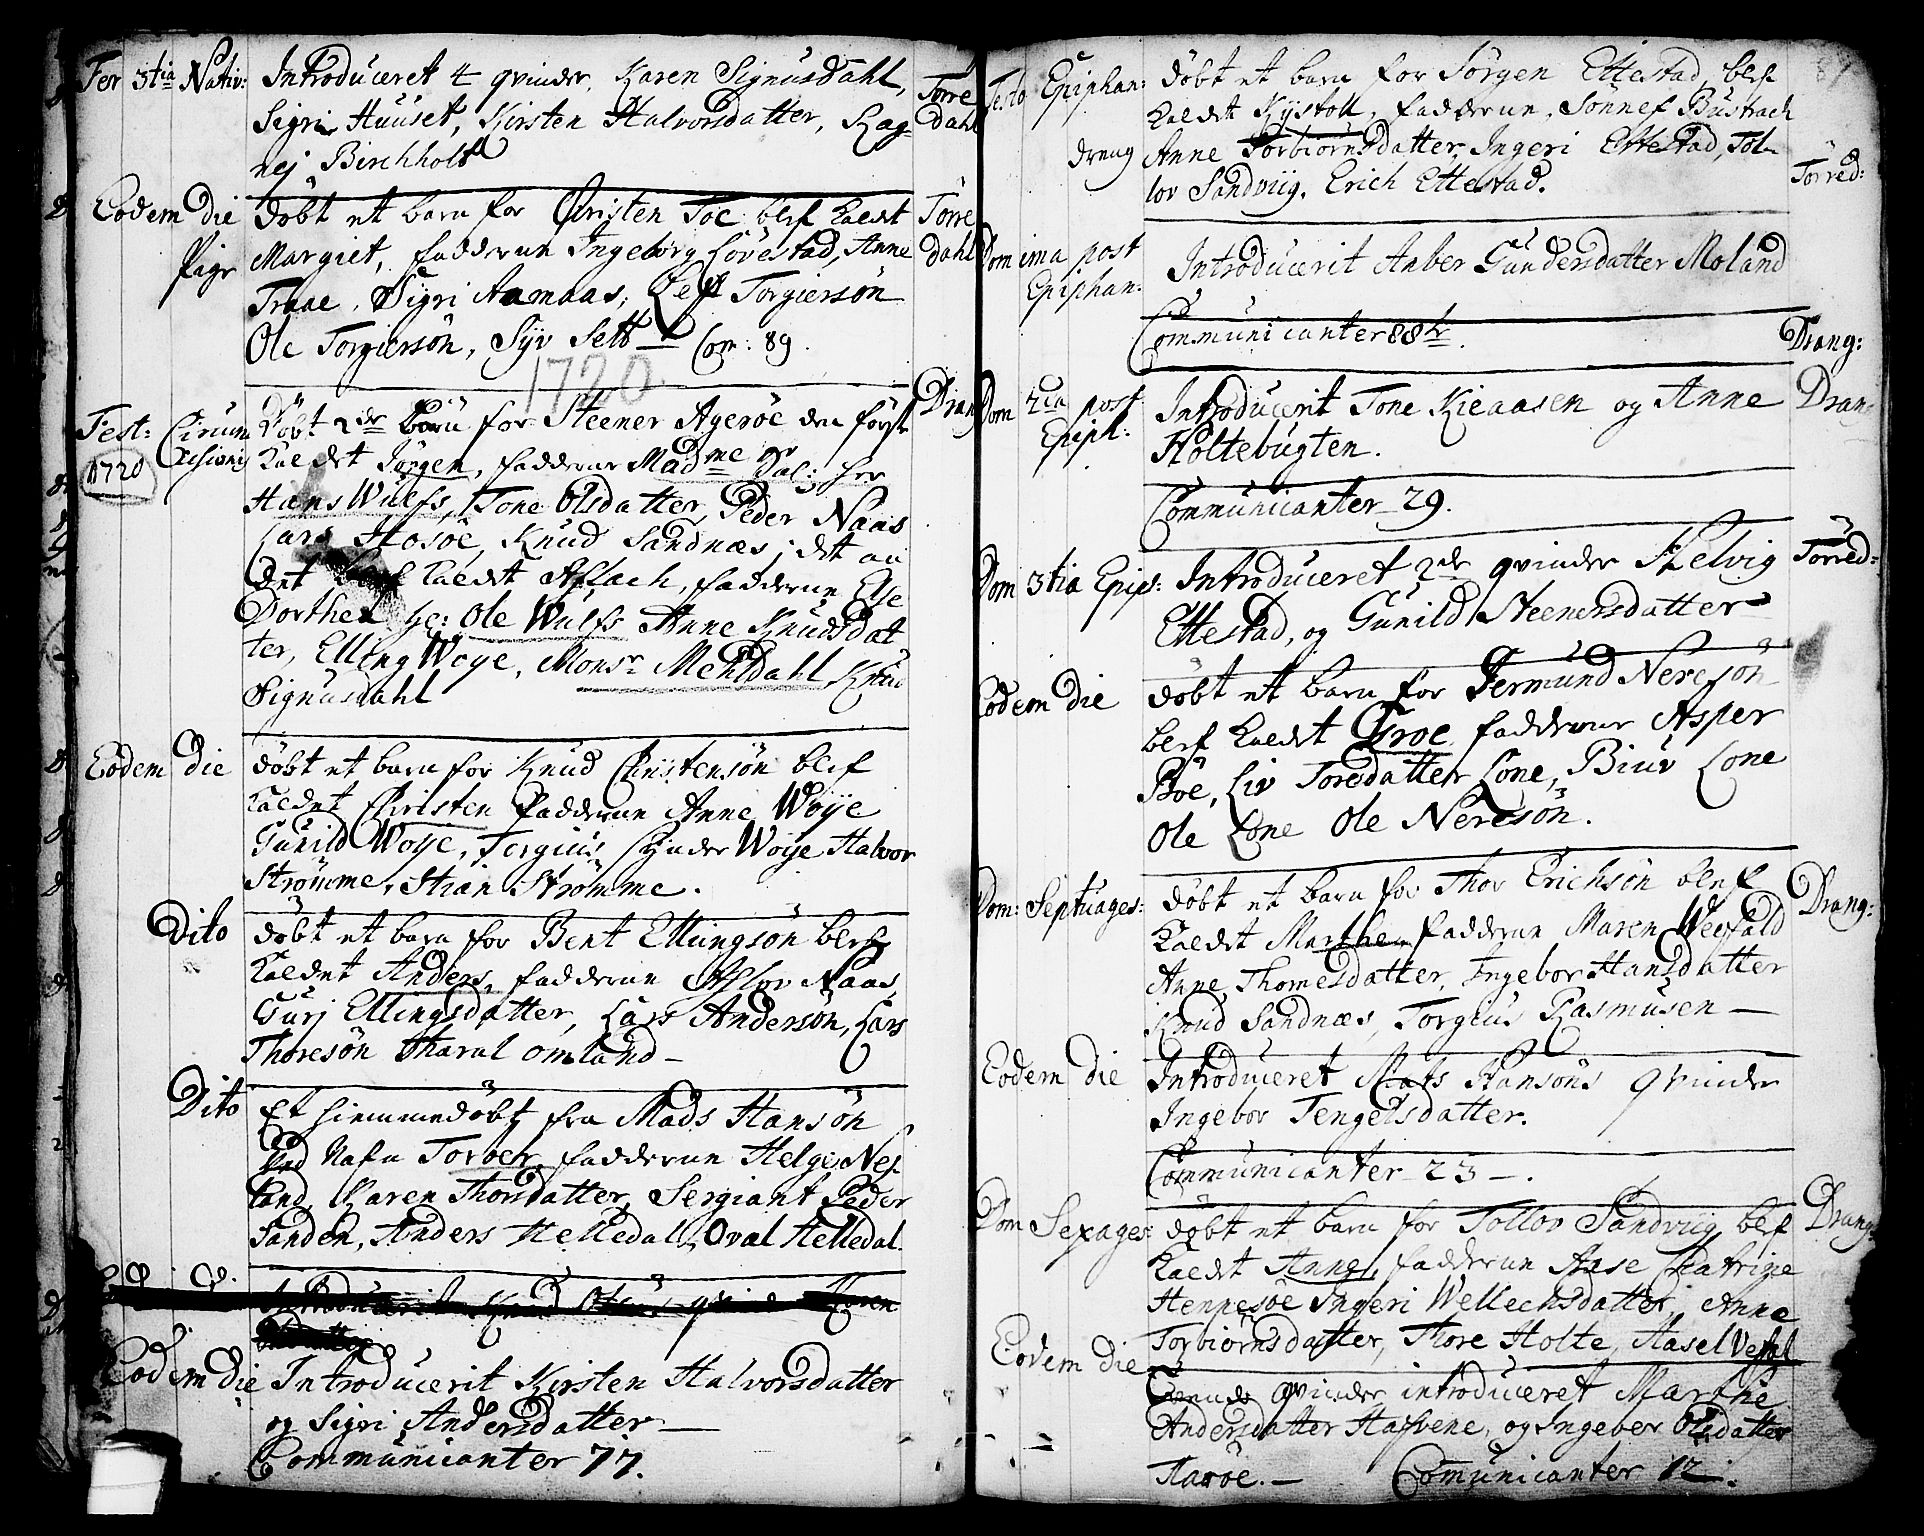 SAKO, Drangedal kirkebøker, F/Fa/L0001: Parish register (official) no. 1, 1697-1767, p. 87